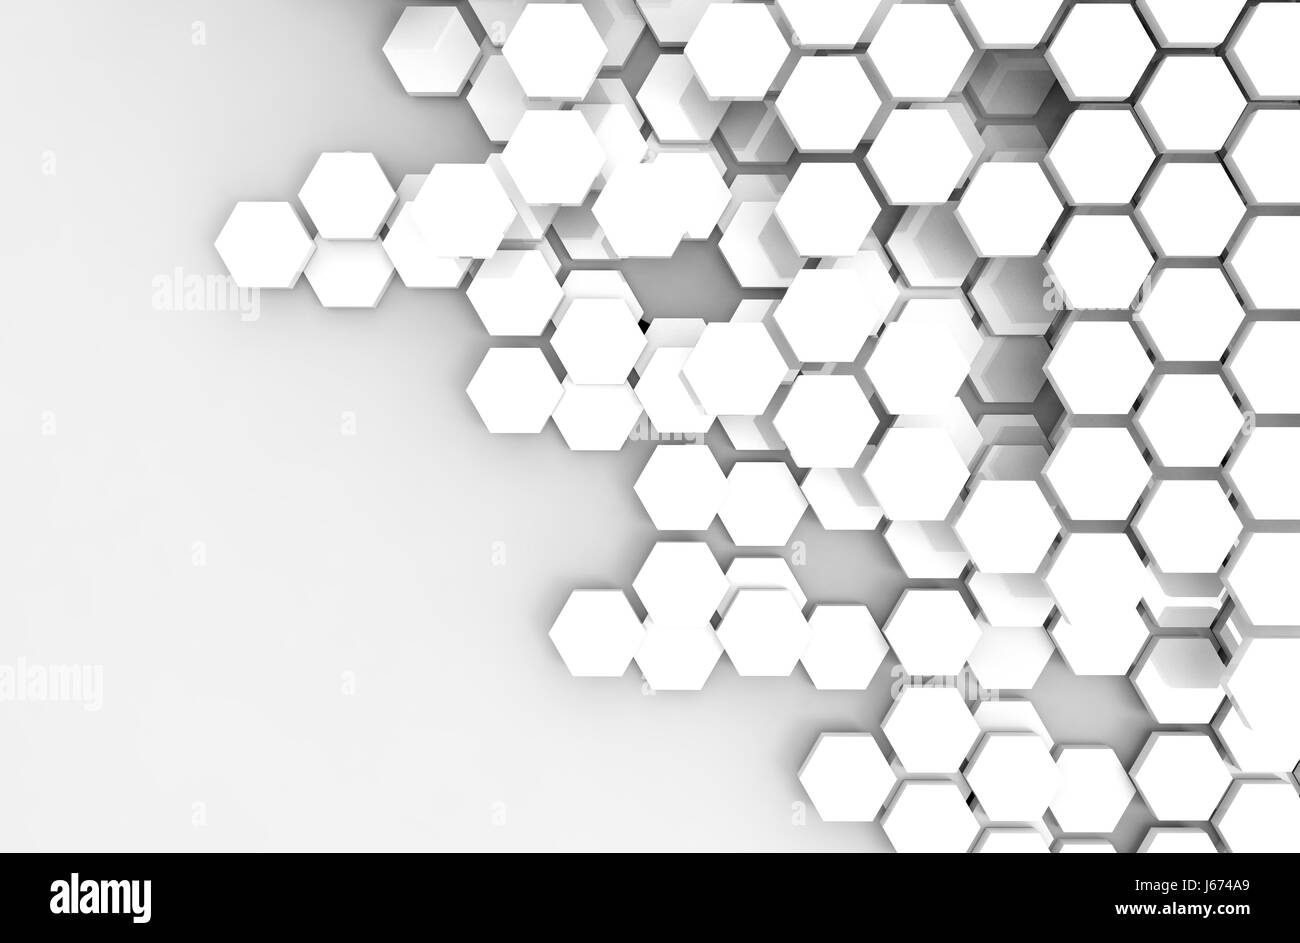 Bitcoin Background Black And White Stock Photos Amp Images